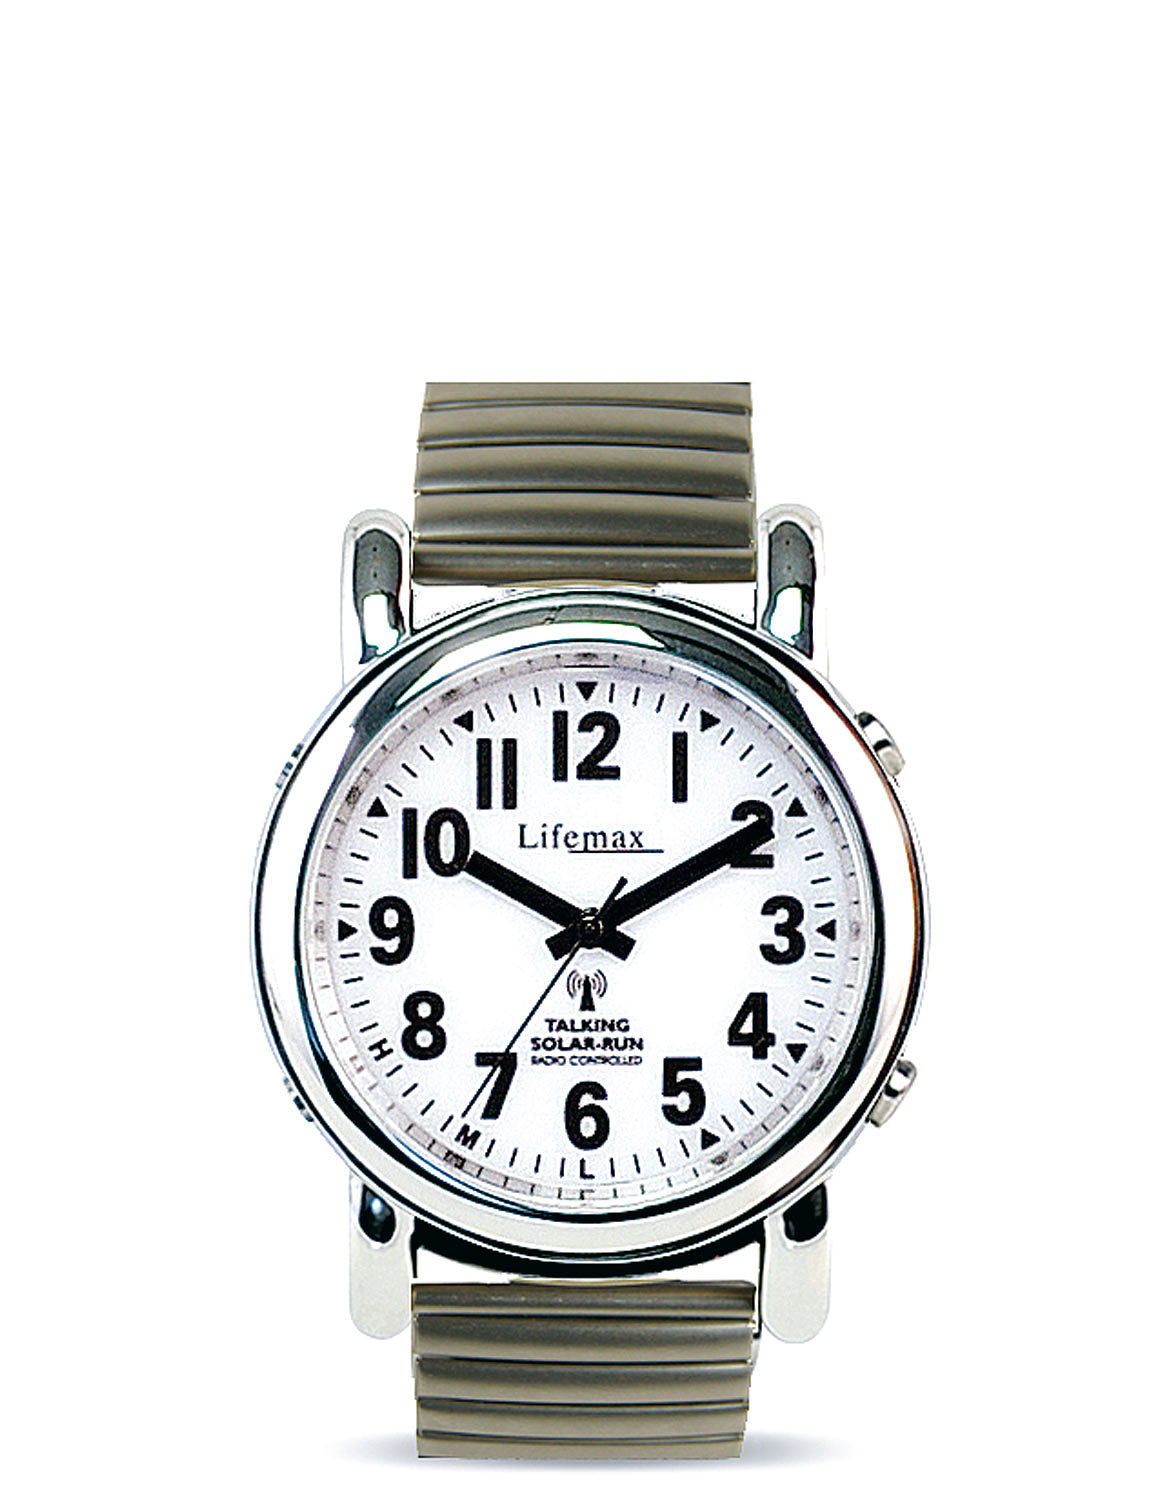 Atomic Talking Watch With Expander Strap Lifestyle